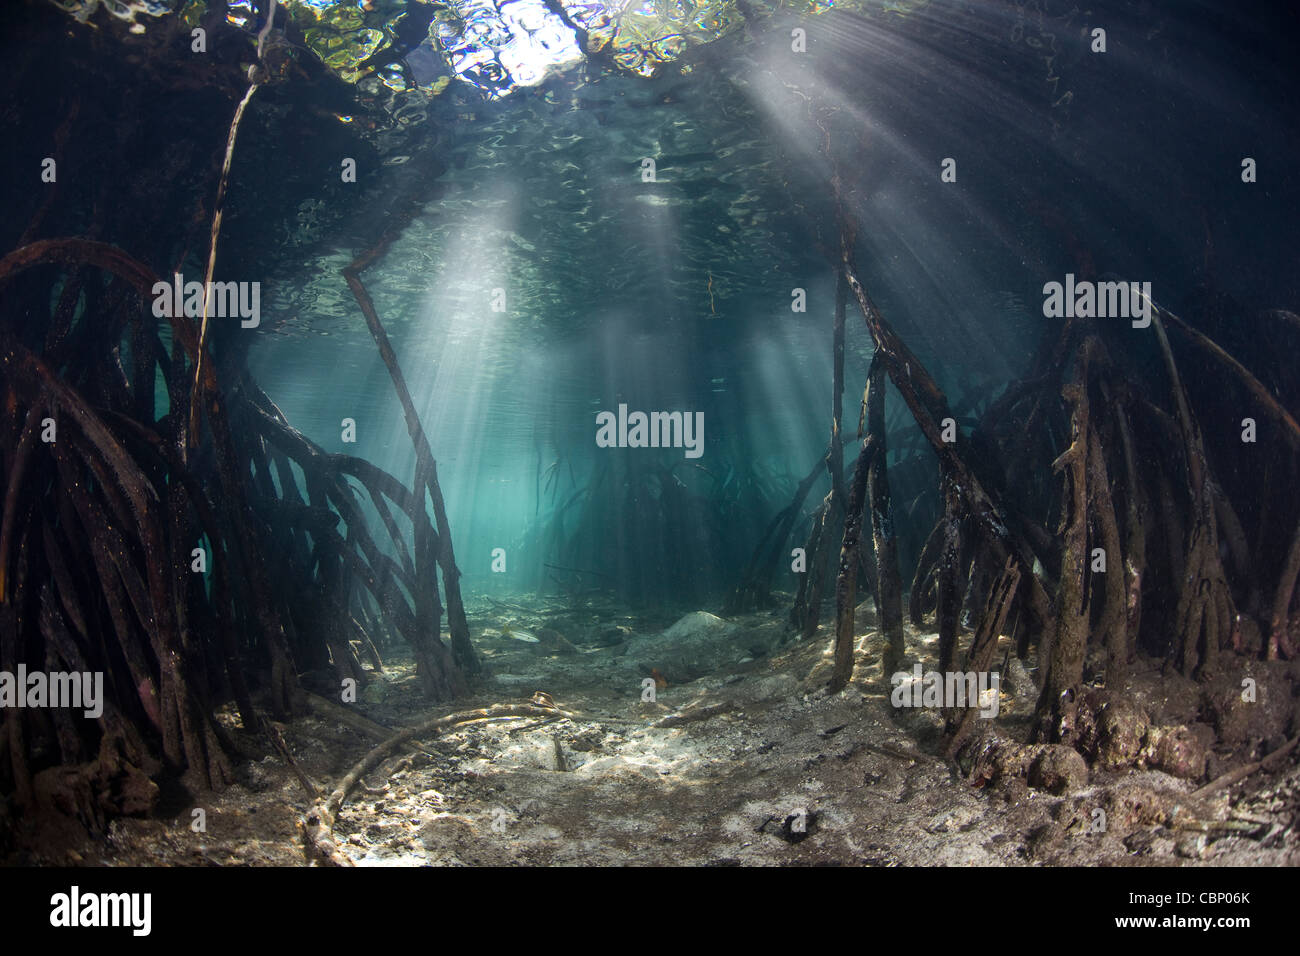 The prop roots of mangrove trees, Rhizophora mangle, provide habitat for small fishes and invertebrates to grow. - Stock Image